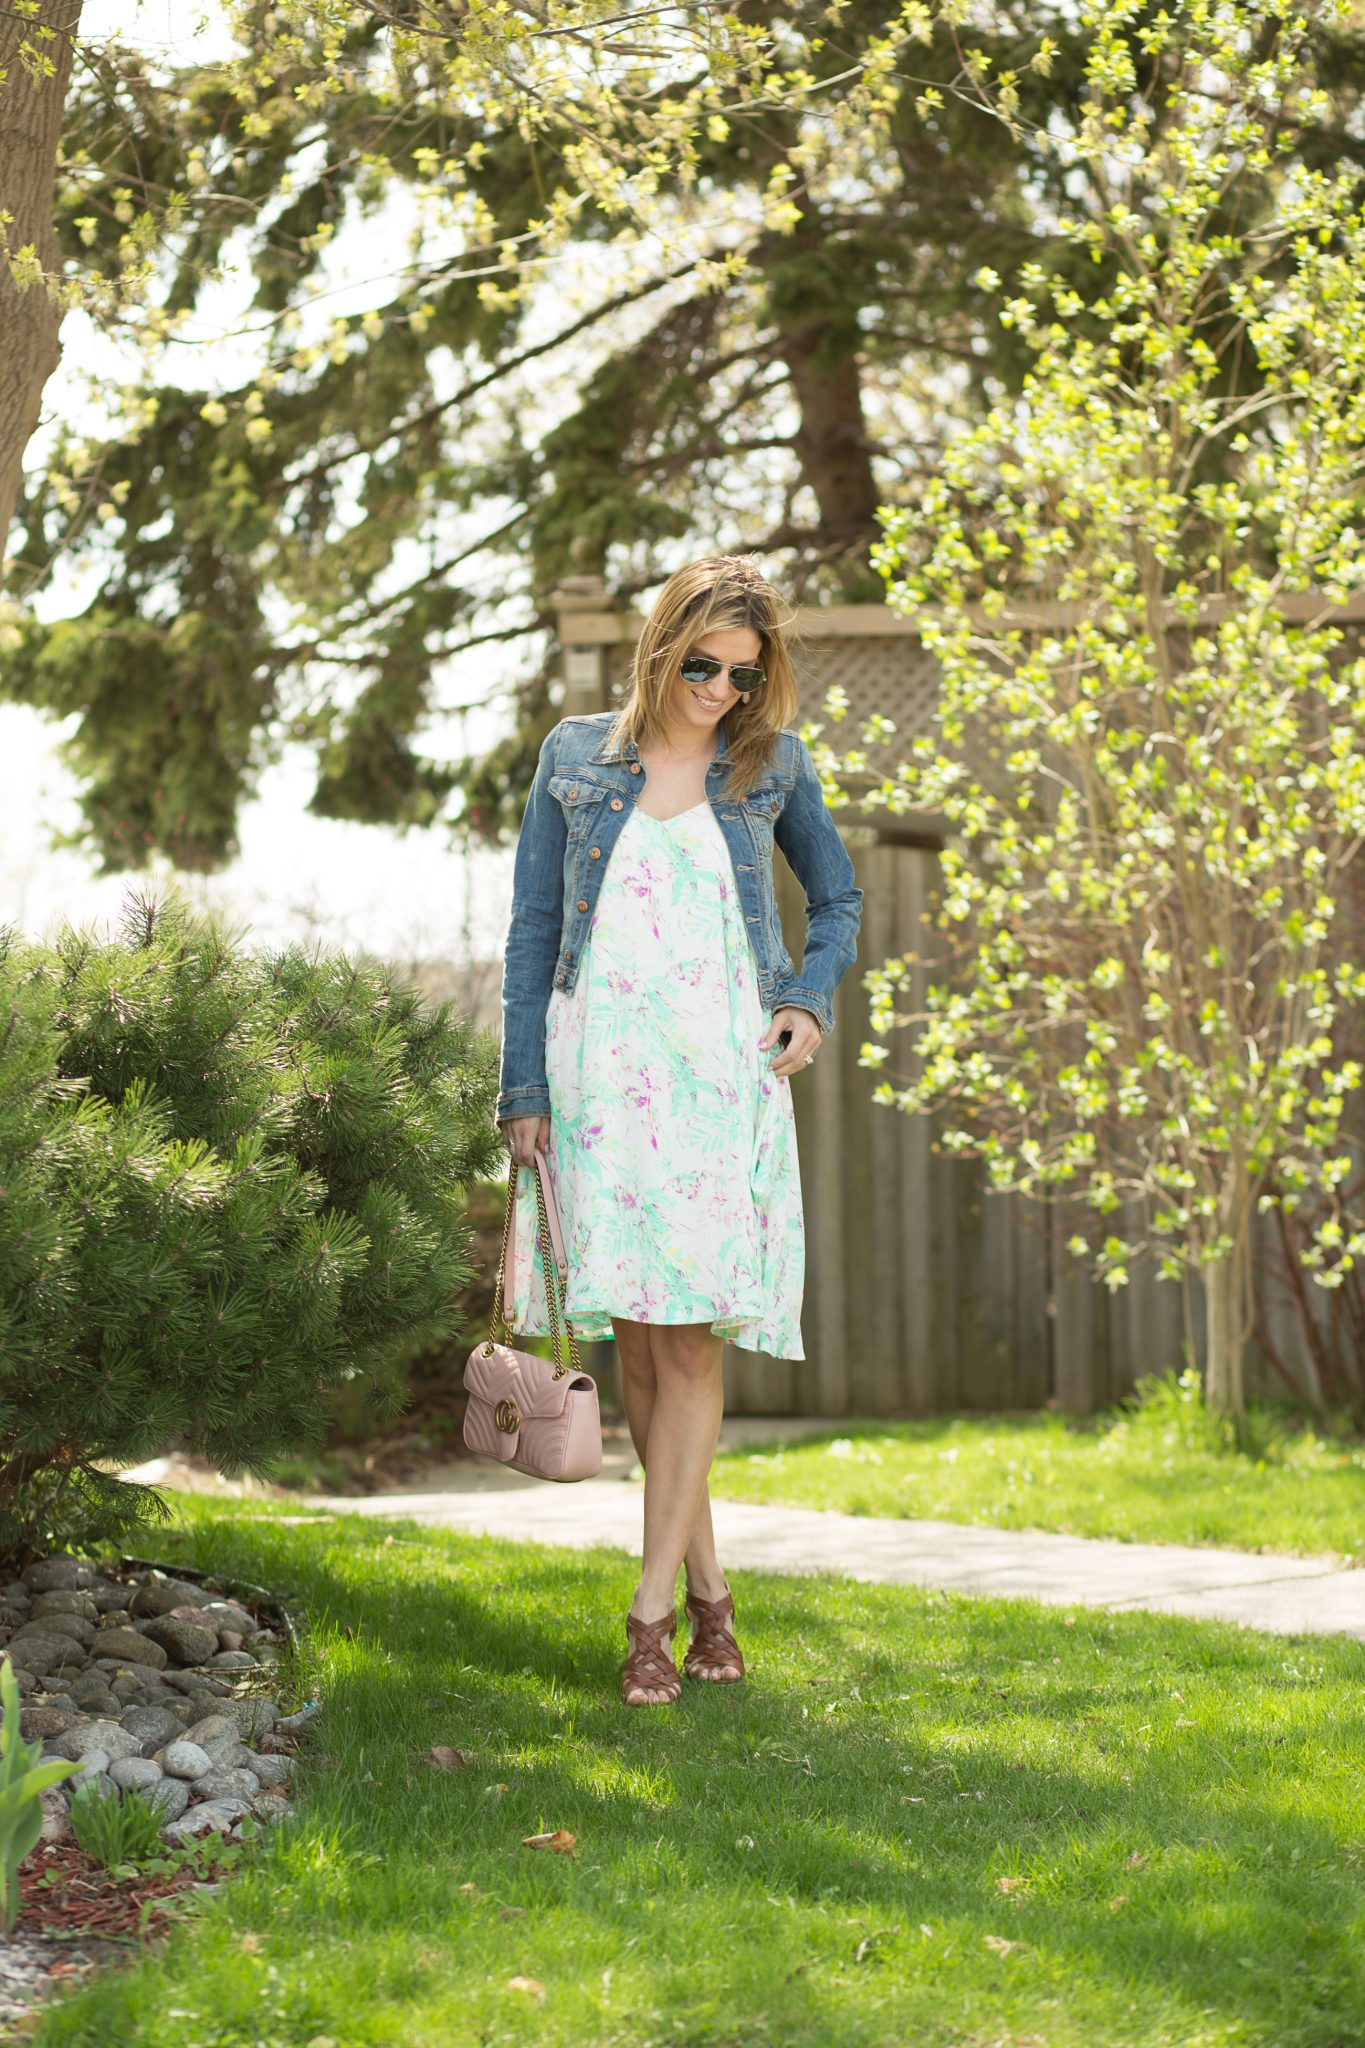 Jean jacket with sprind floral dress from pink blush